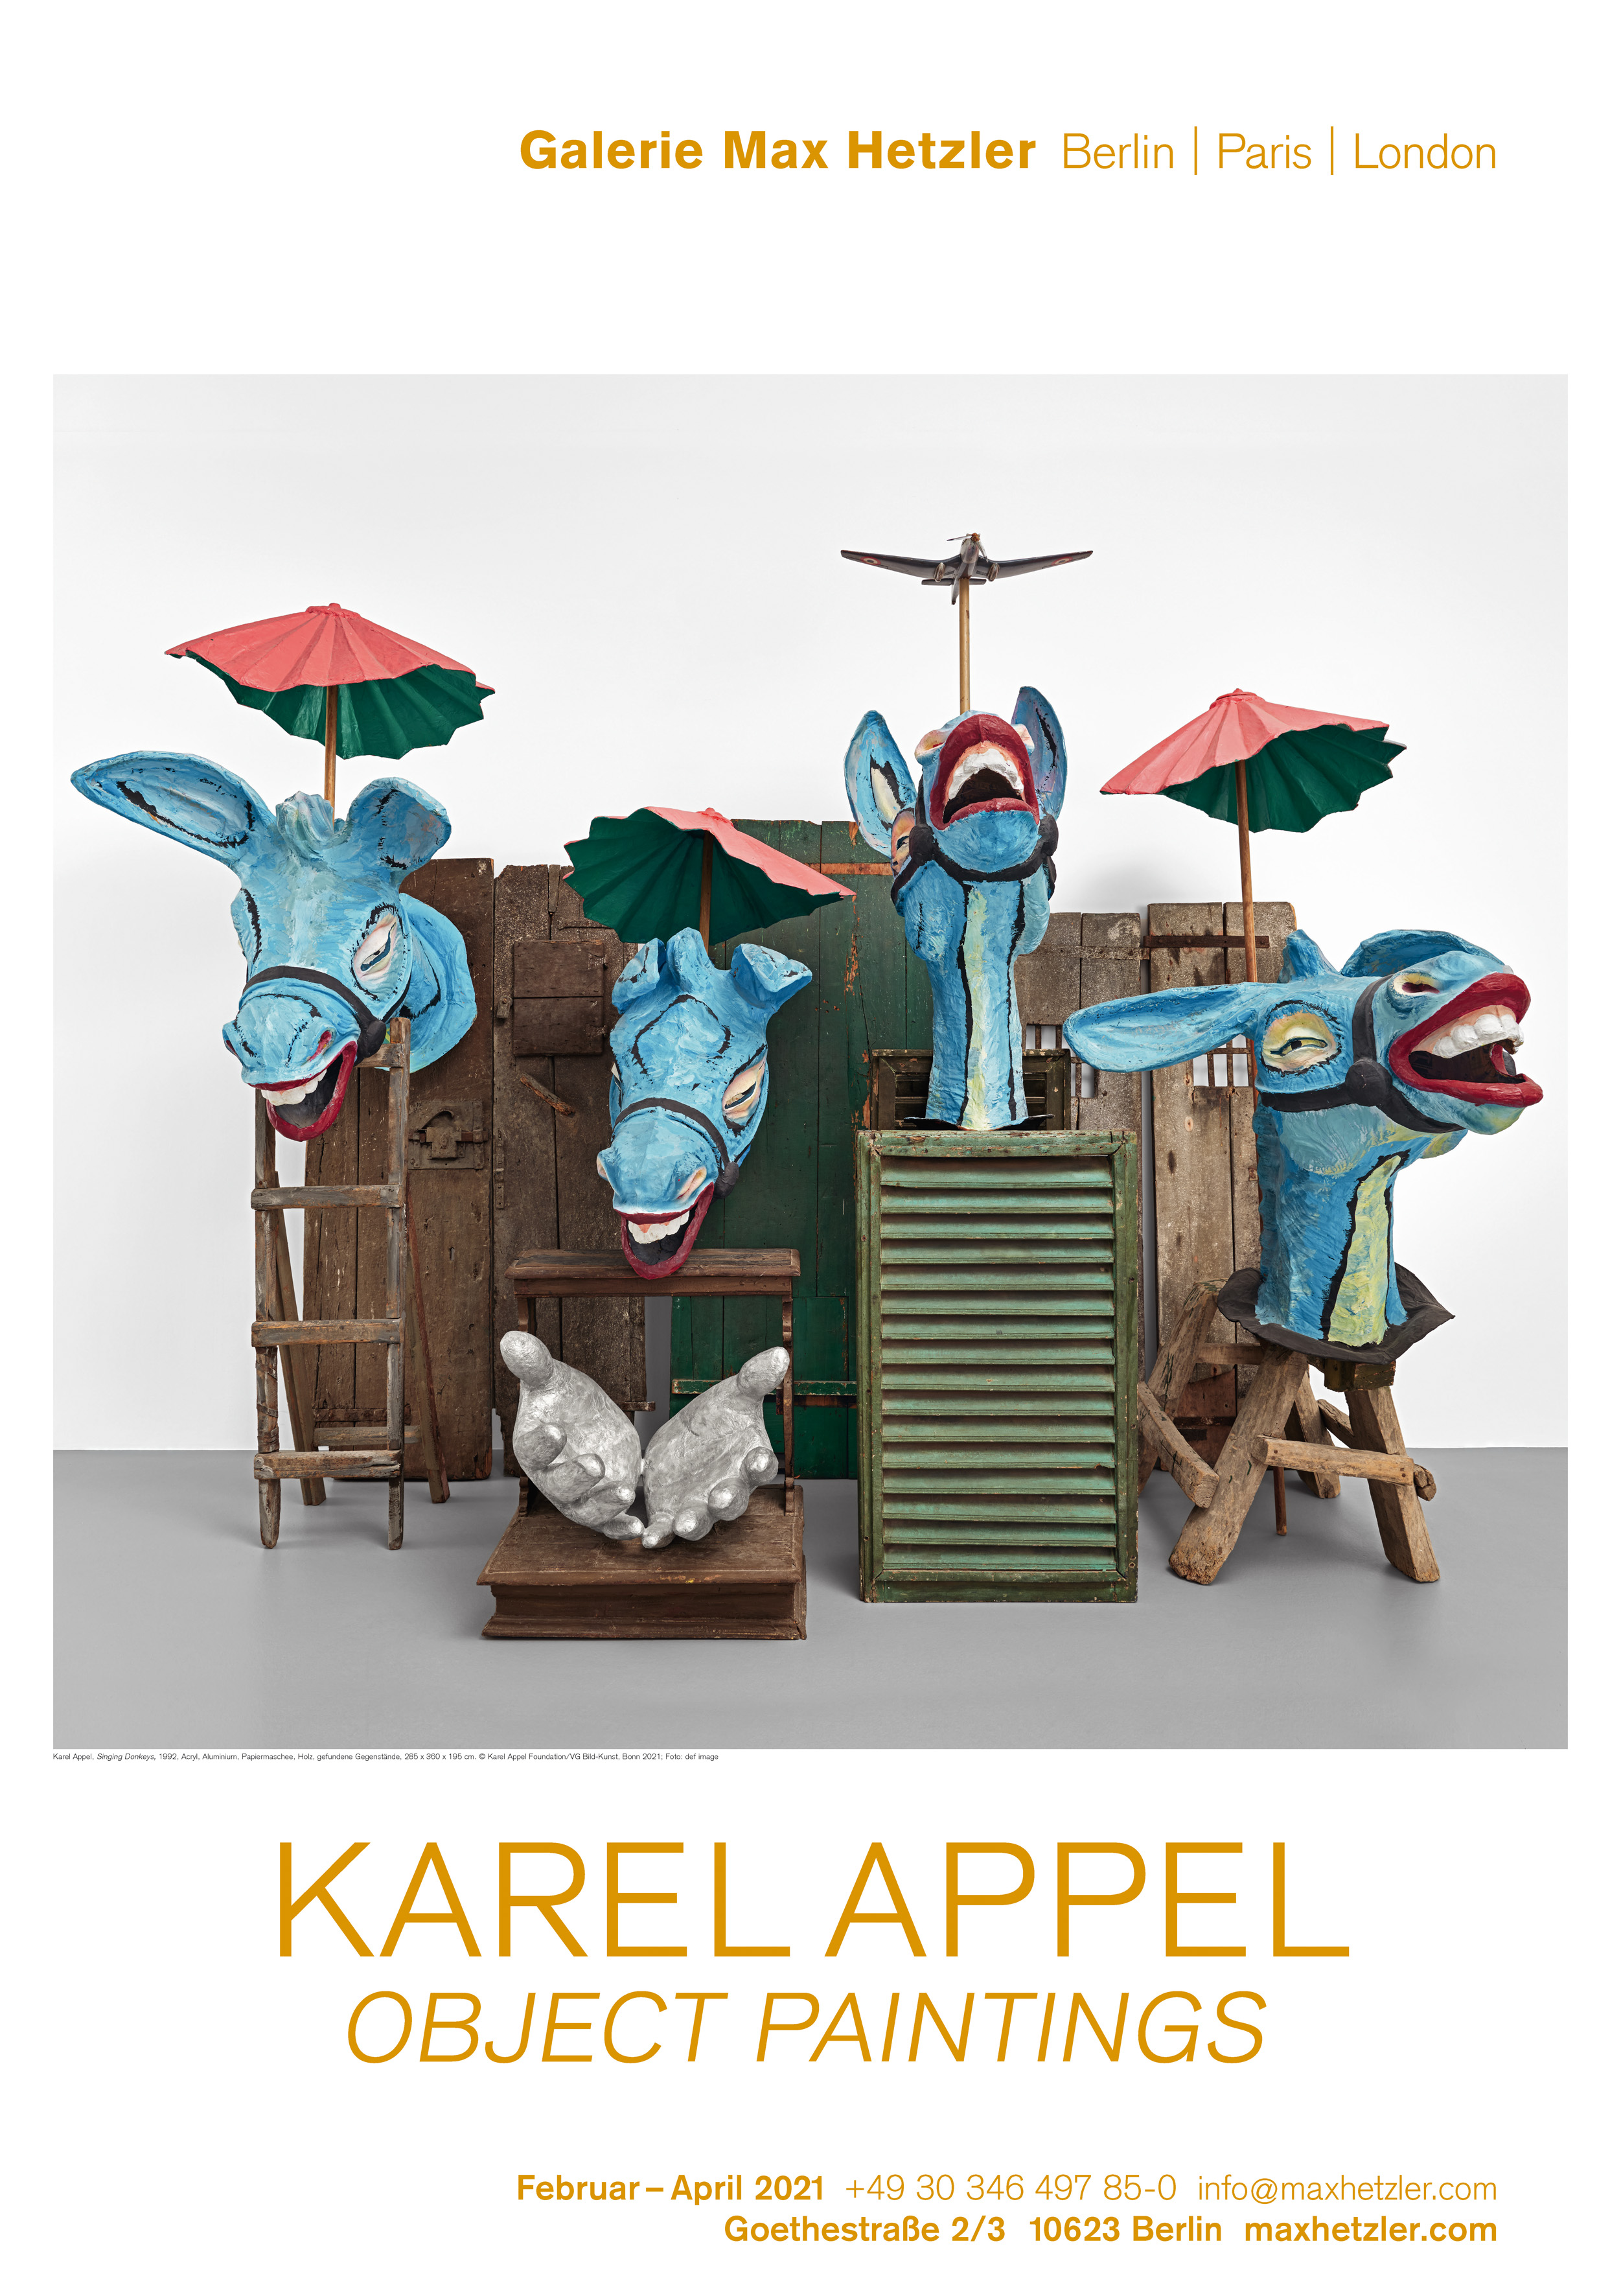 Karel Appel, Object Paintings - Galerie Max Hetzler